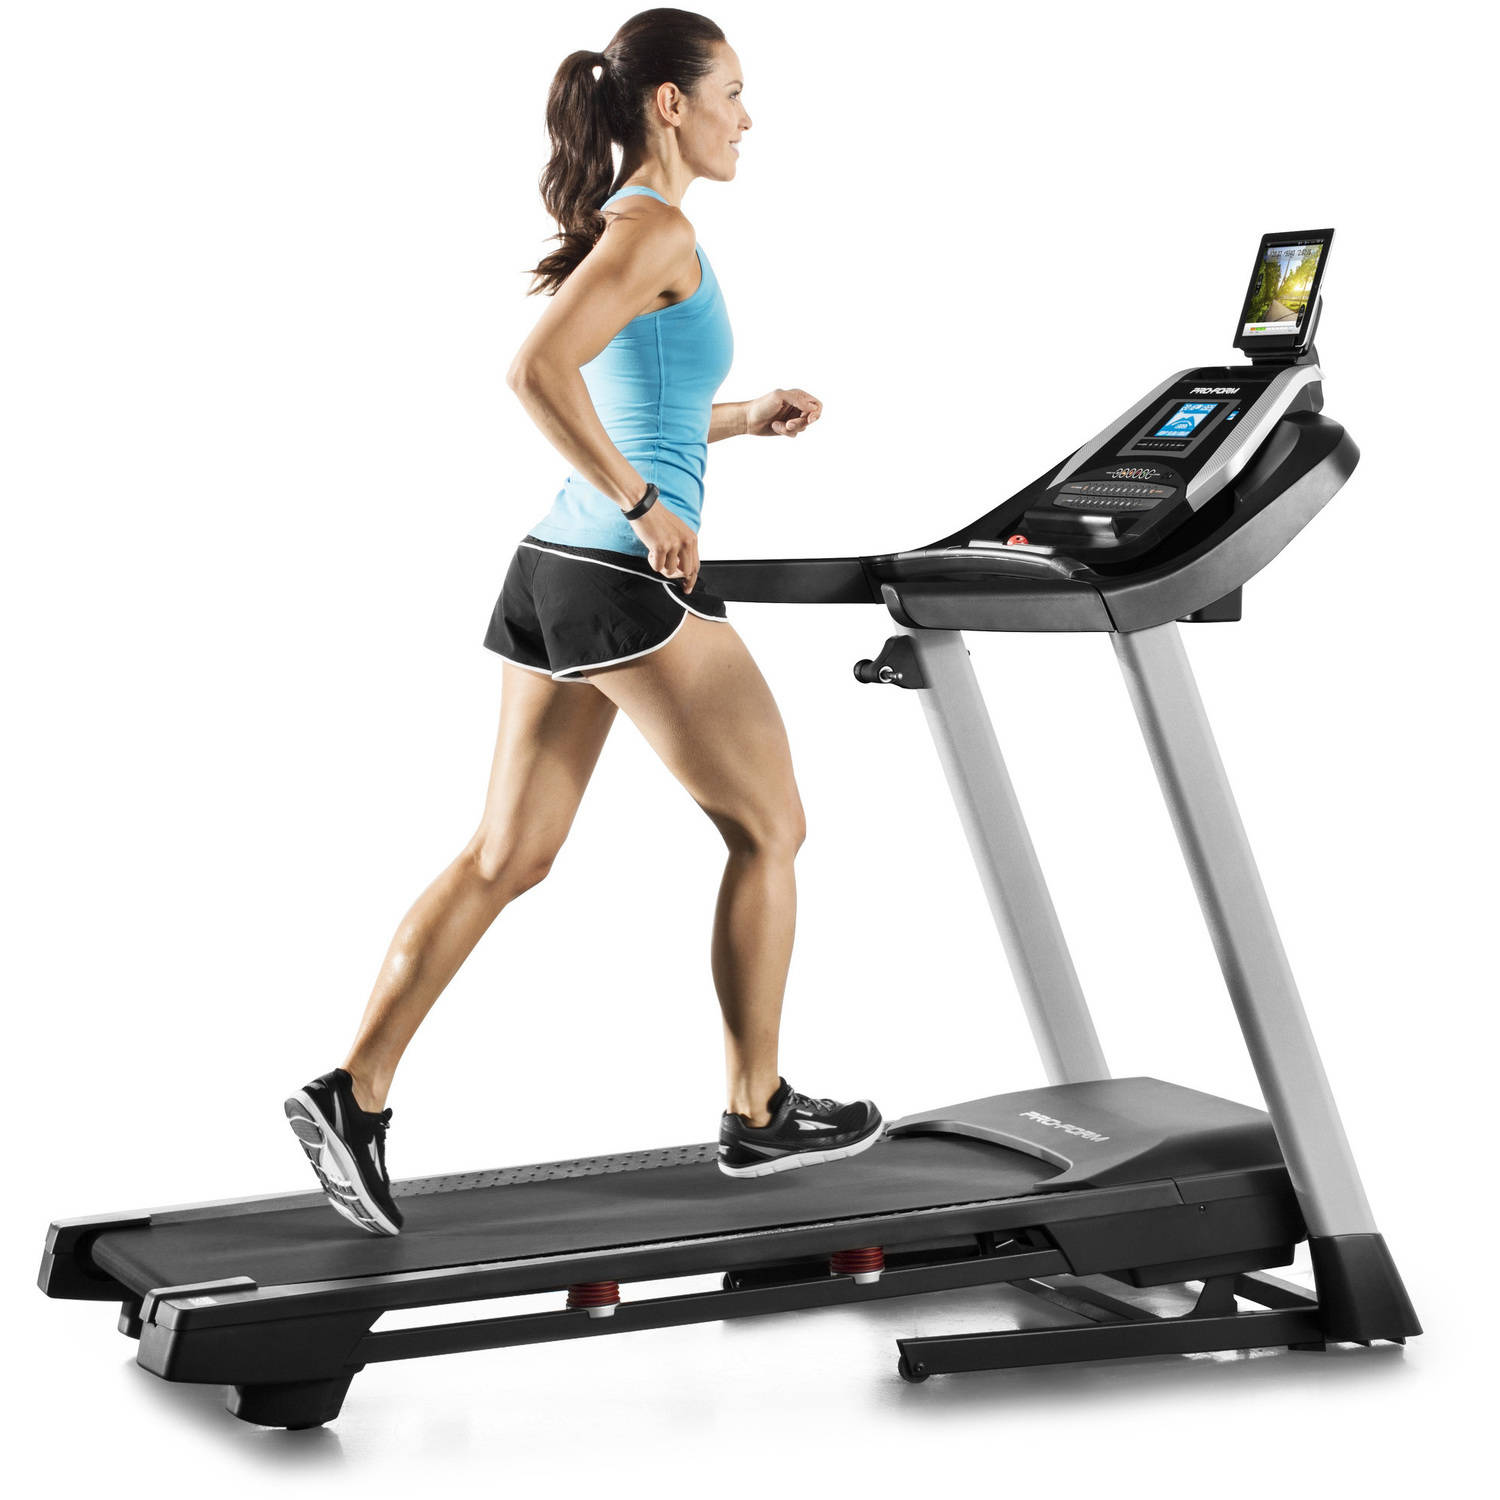 ProForm 505 CST Folding Treadmill with Power Incline and Heart Rate Monitor, New Model